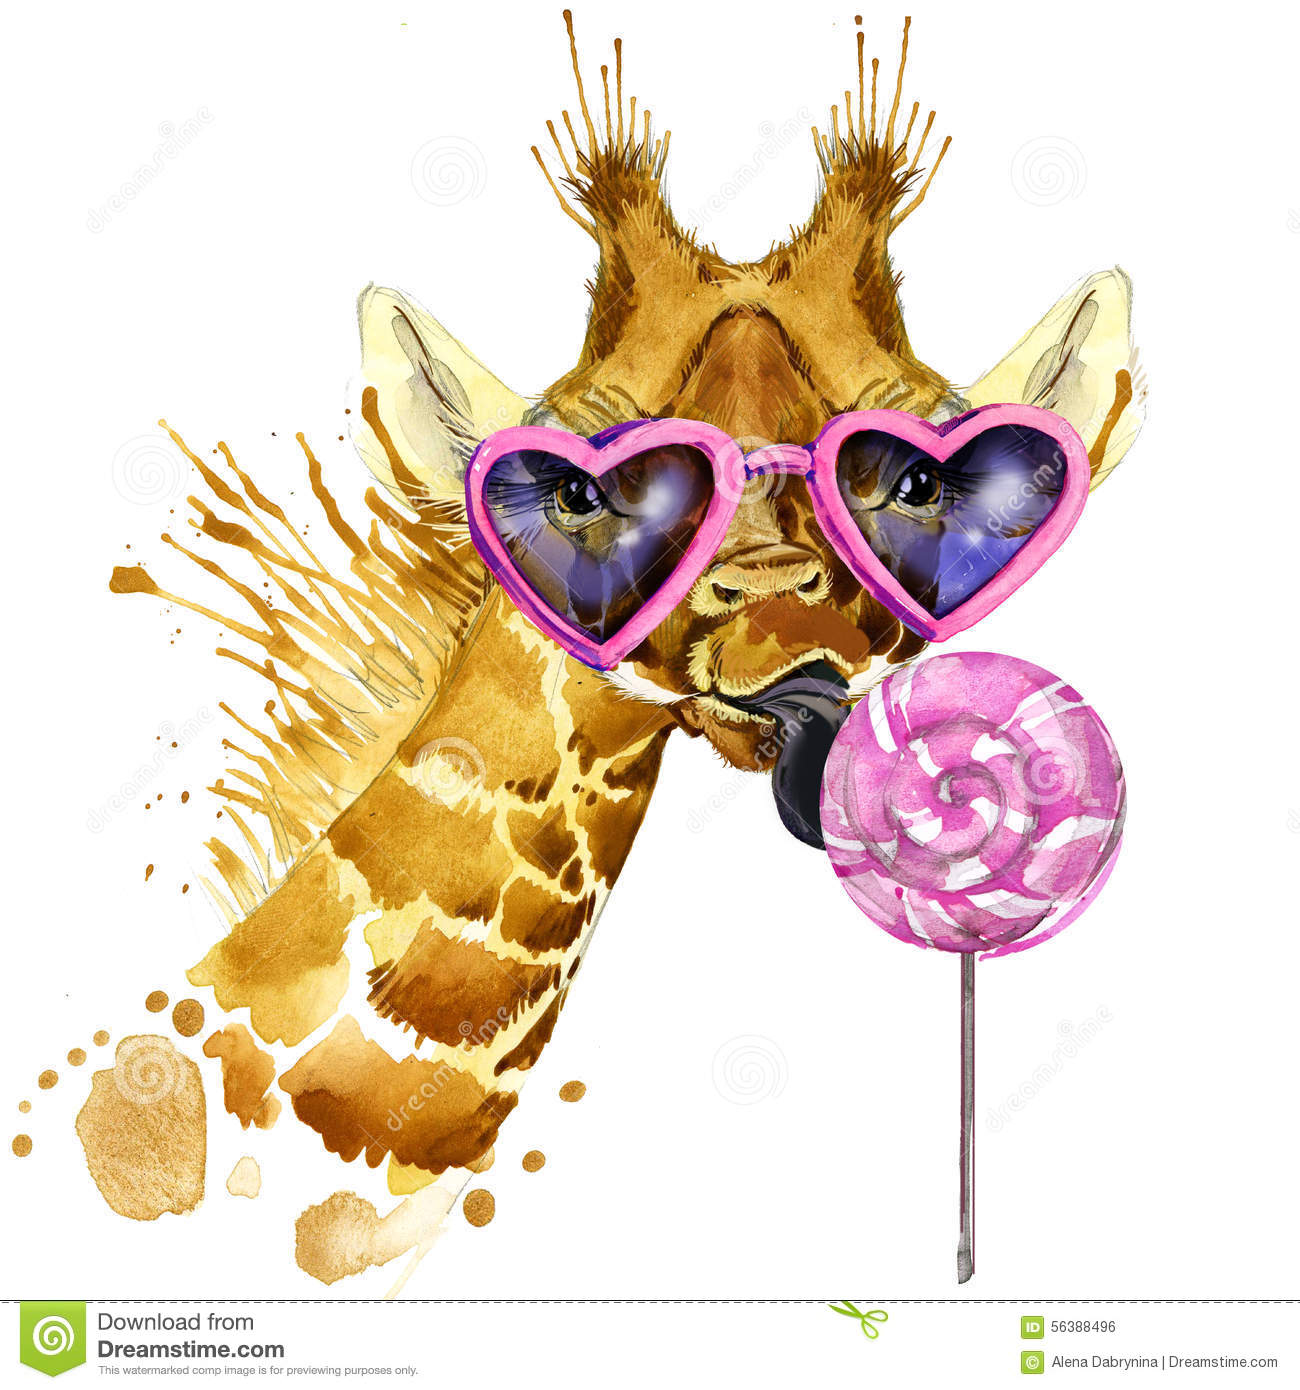 Giraffe T-shirt graphics, giraffe and sweet candy illustration with splash watercolor textured background. unusual illustration wa